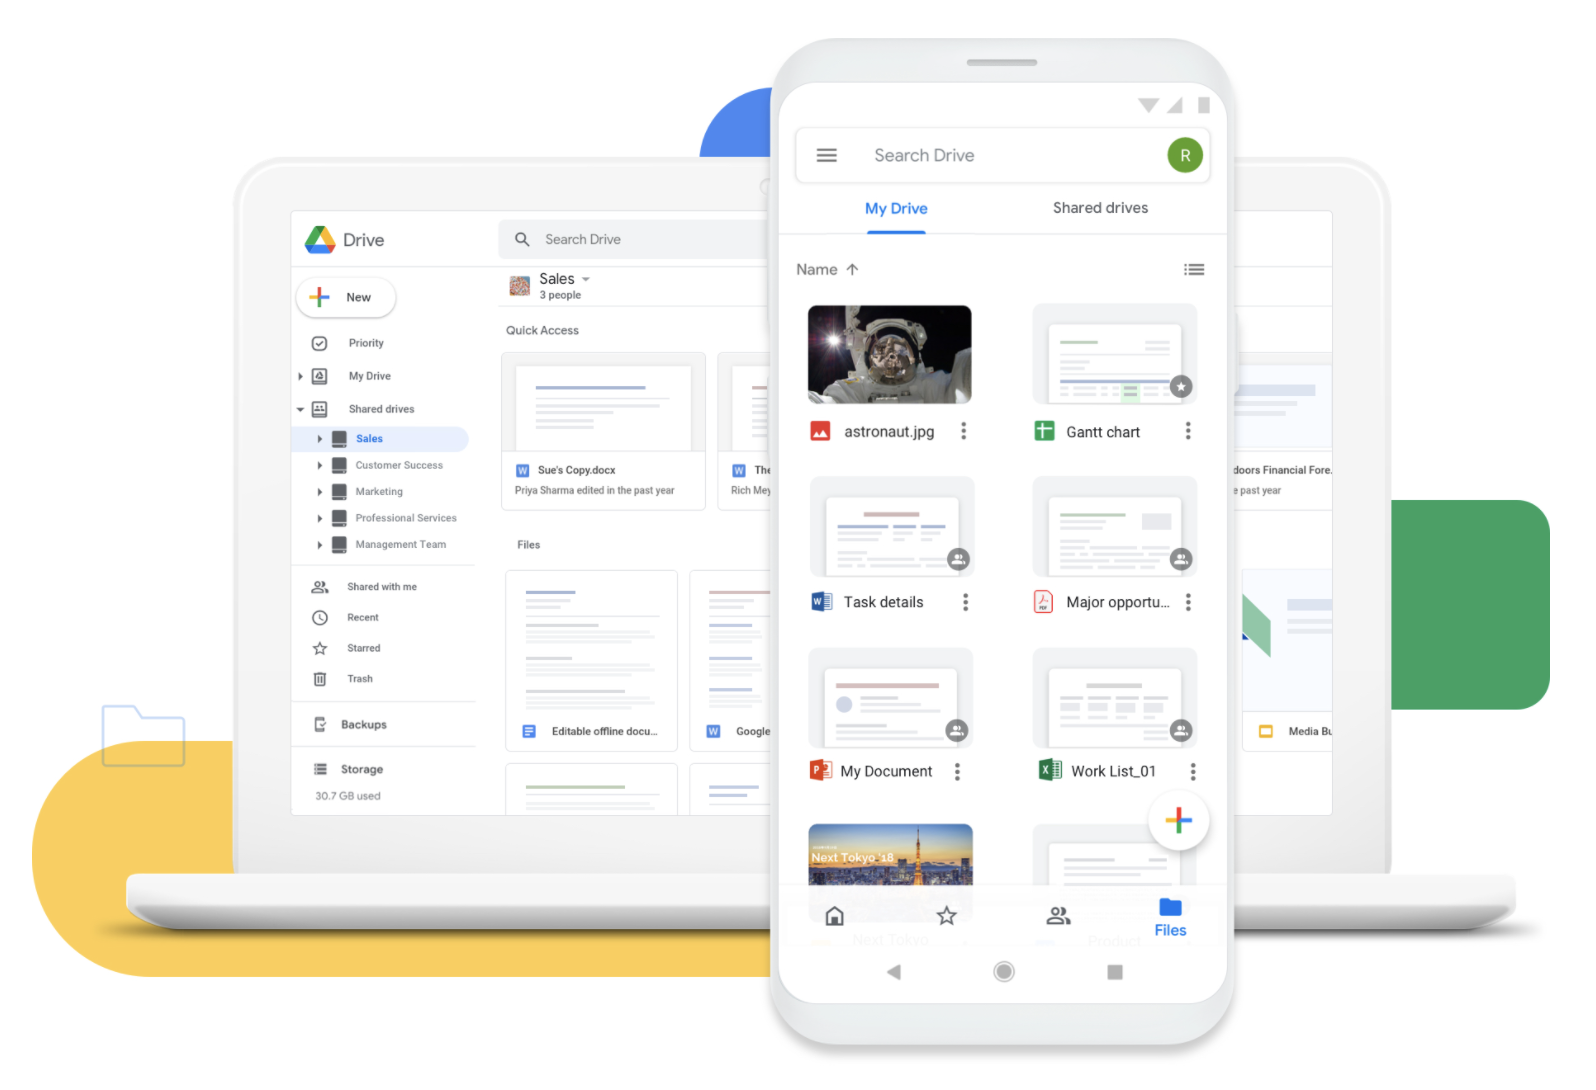 Managing files with Google Drive